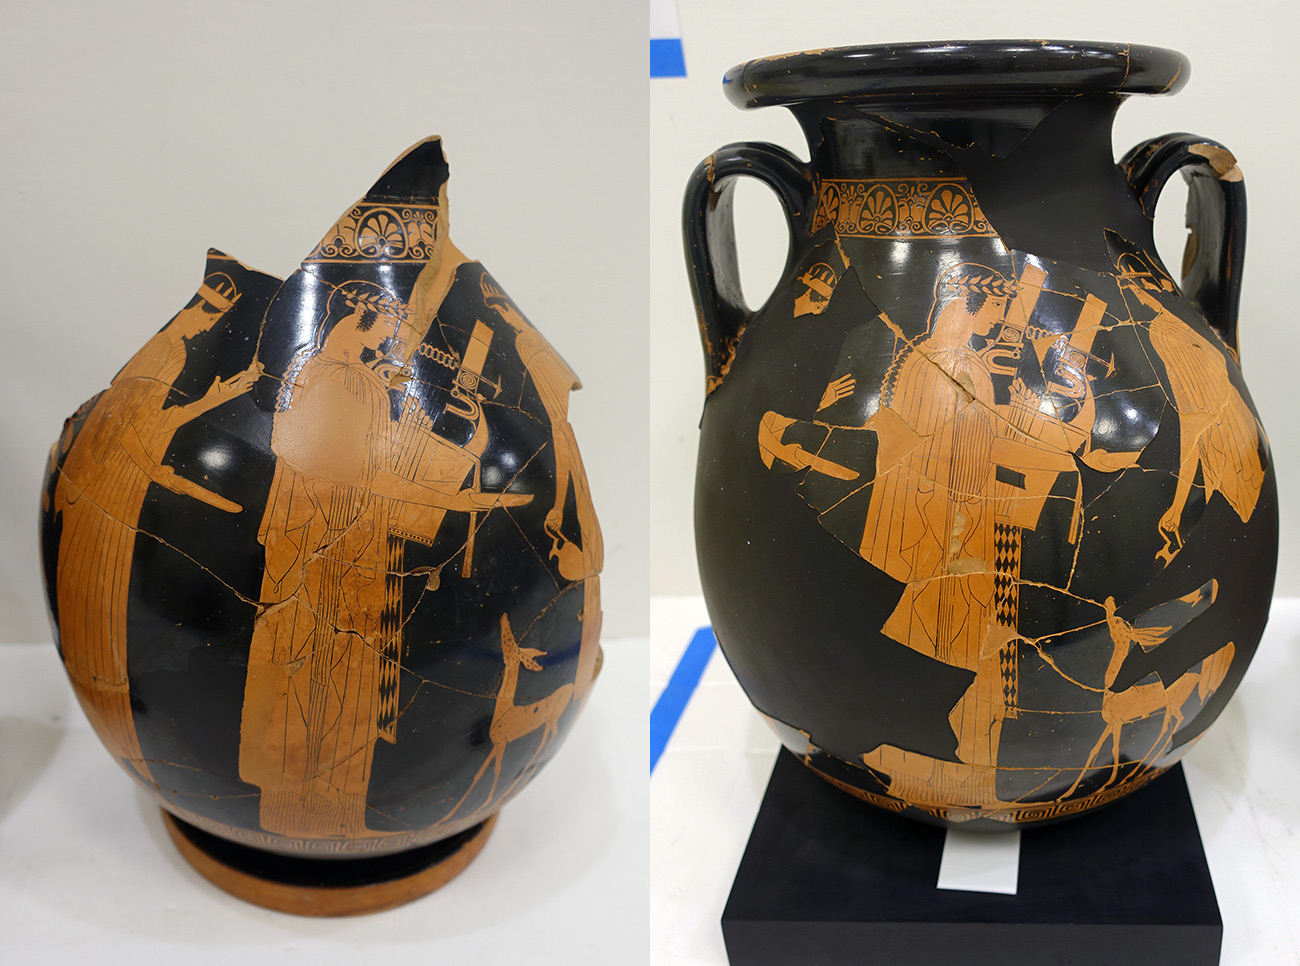 Snapshots of two similarly painted, partially broken Greek vessels showing Apollo playing a lyre